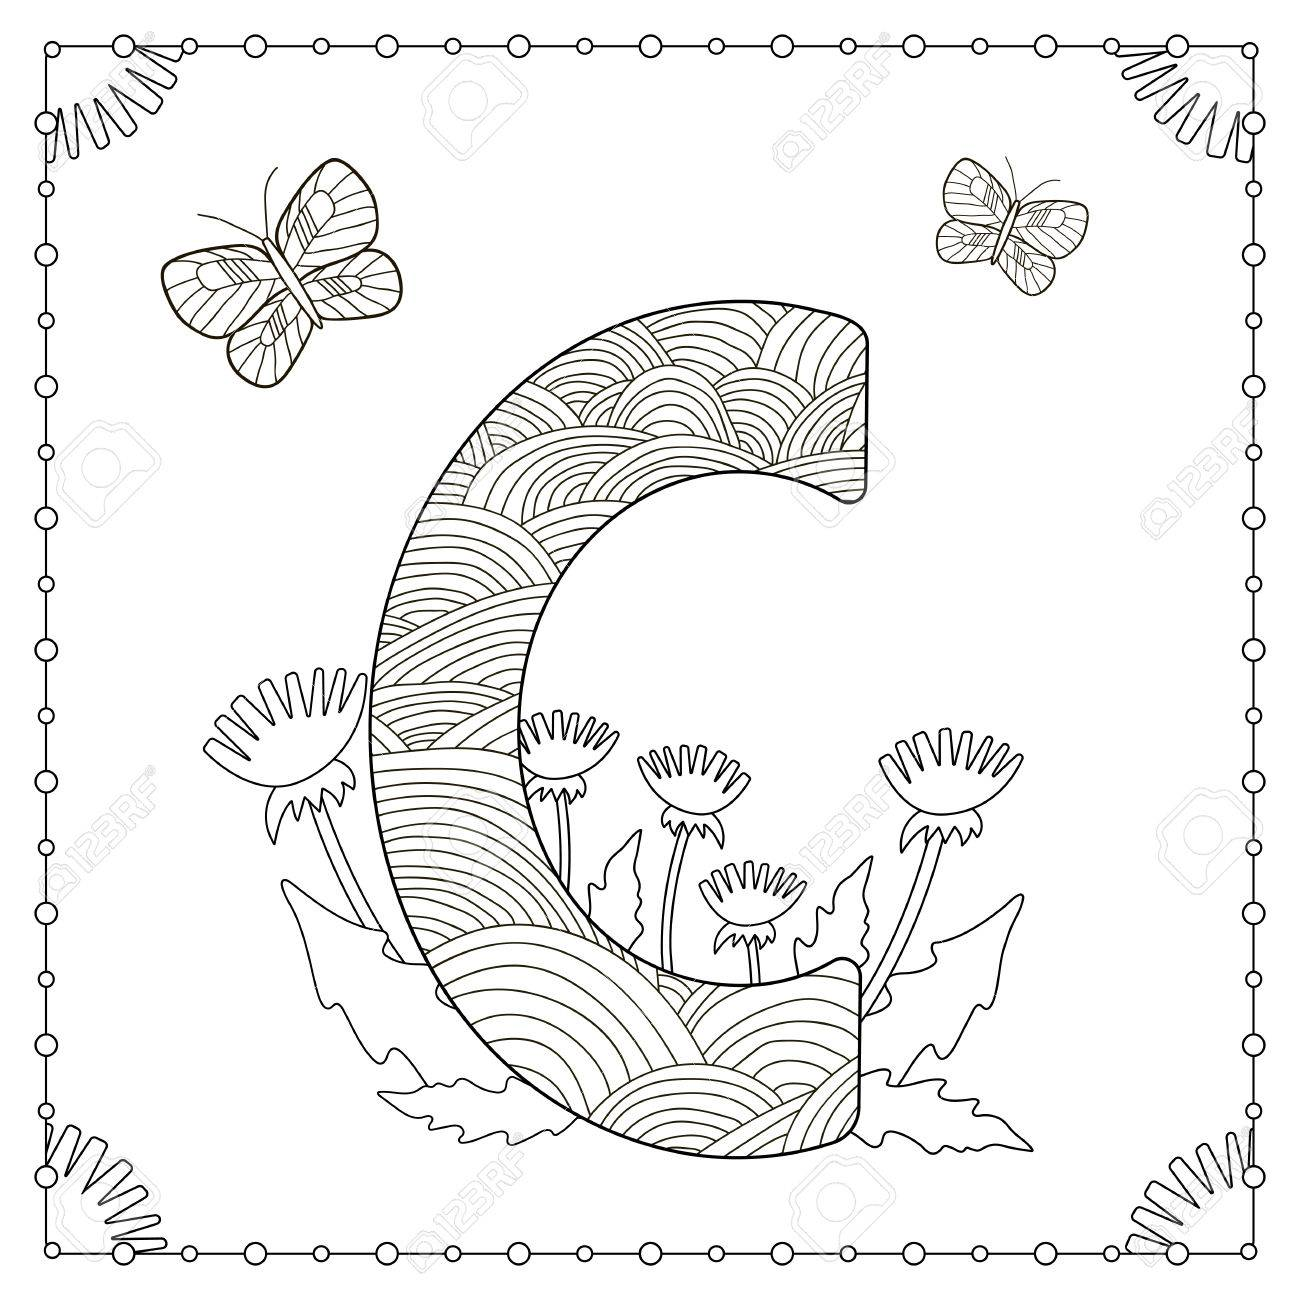 Alphabet Coloring Page Capital Letter